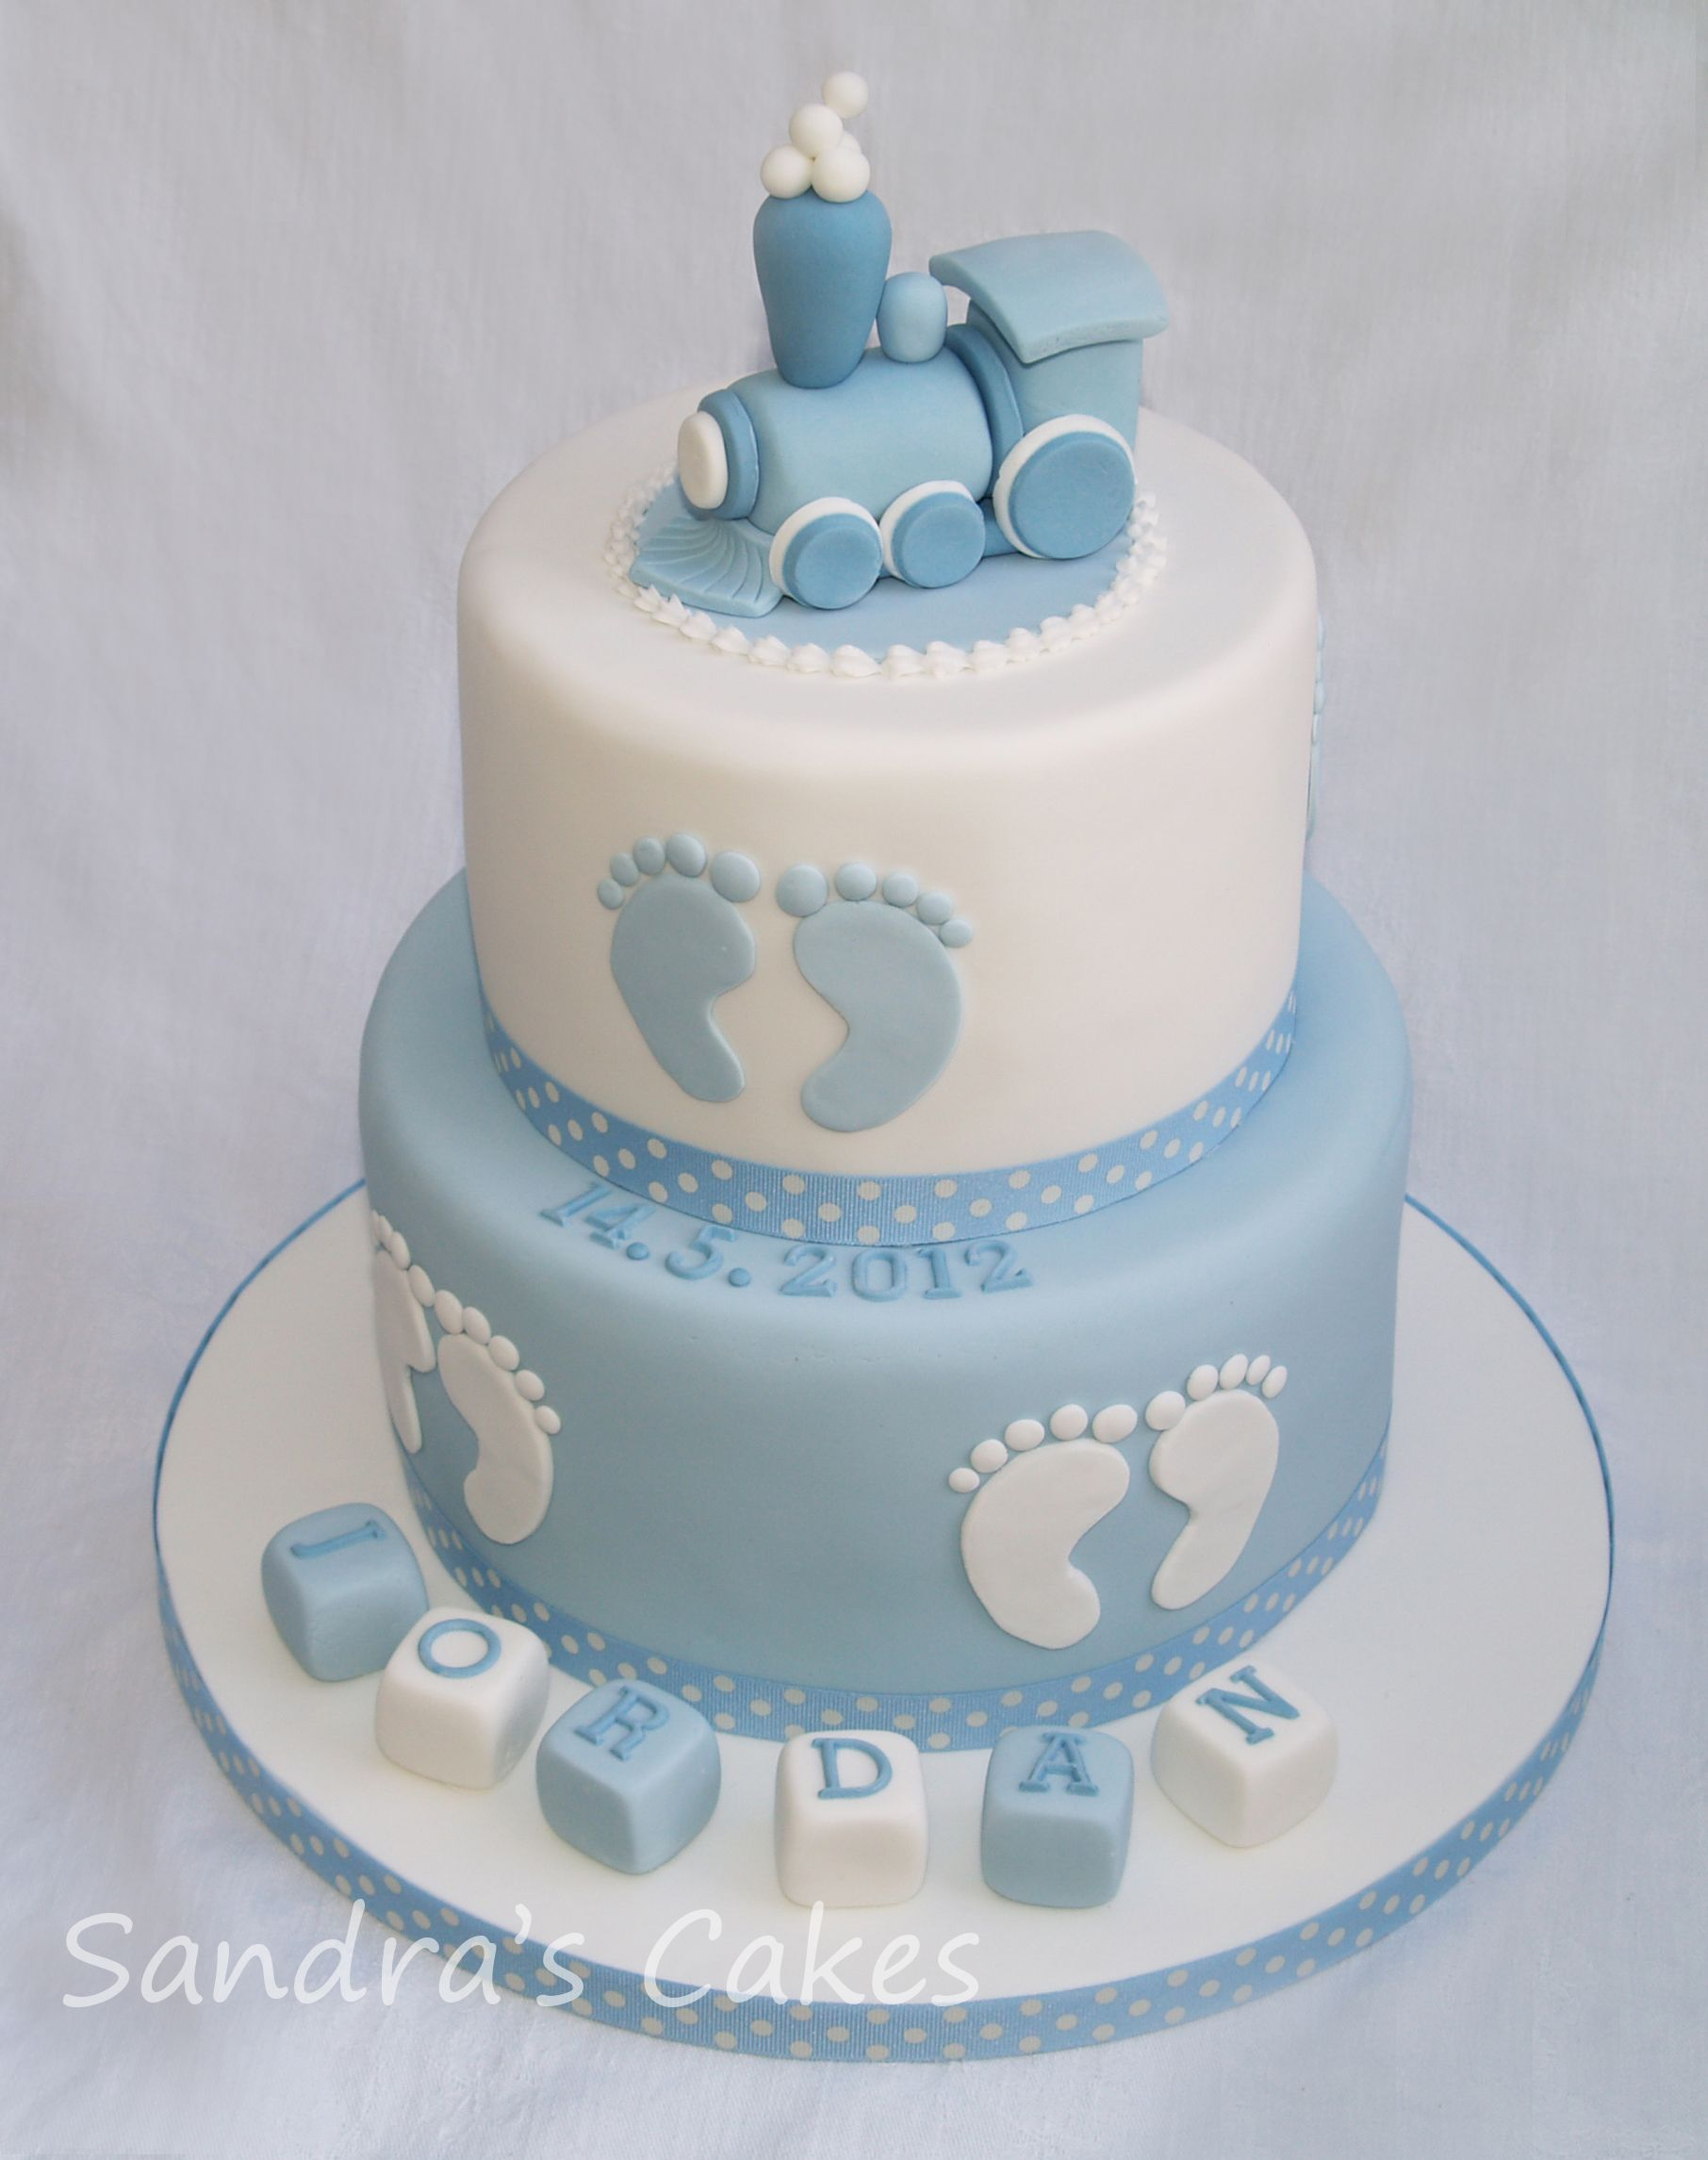 Pin By Sharon Callanan On Christening Cakes Baby Boy Baby Shower Cakes For Boys Christening Cake Boy Baby Boy Christening Cake